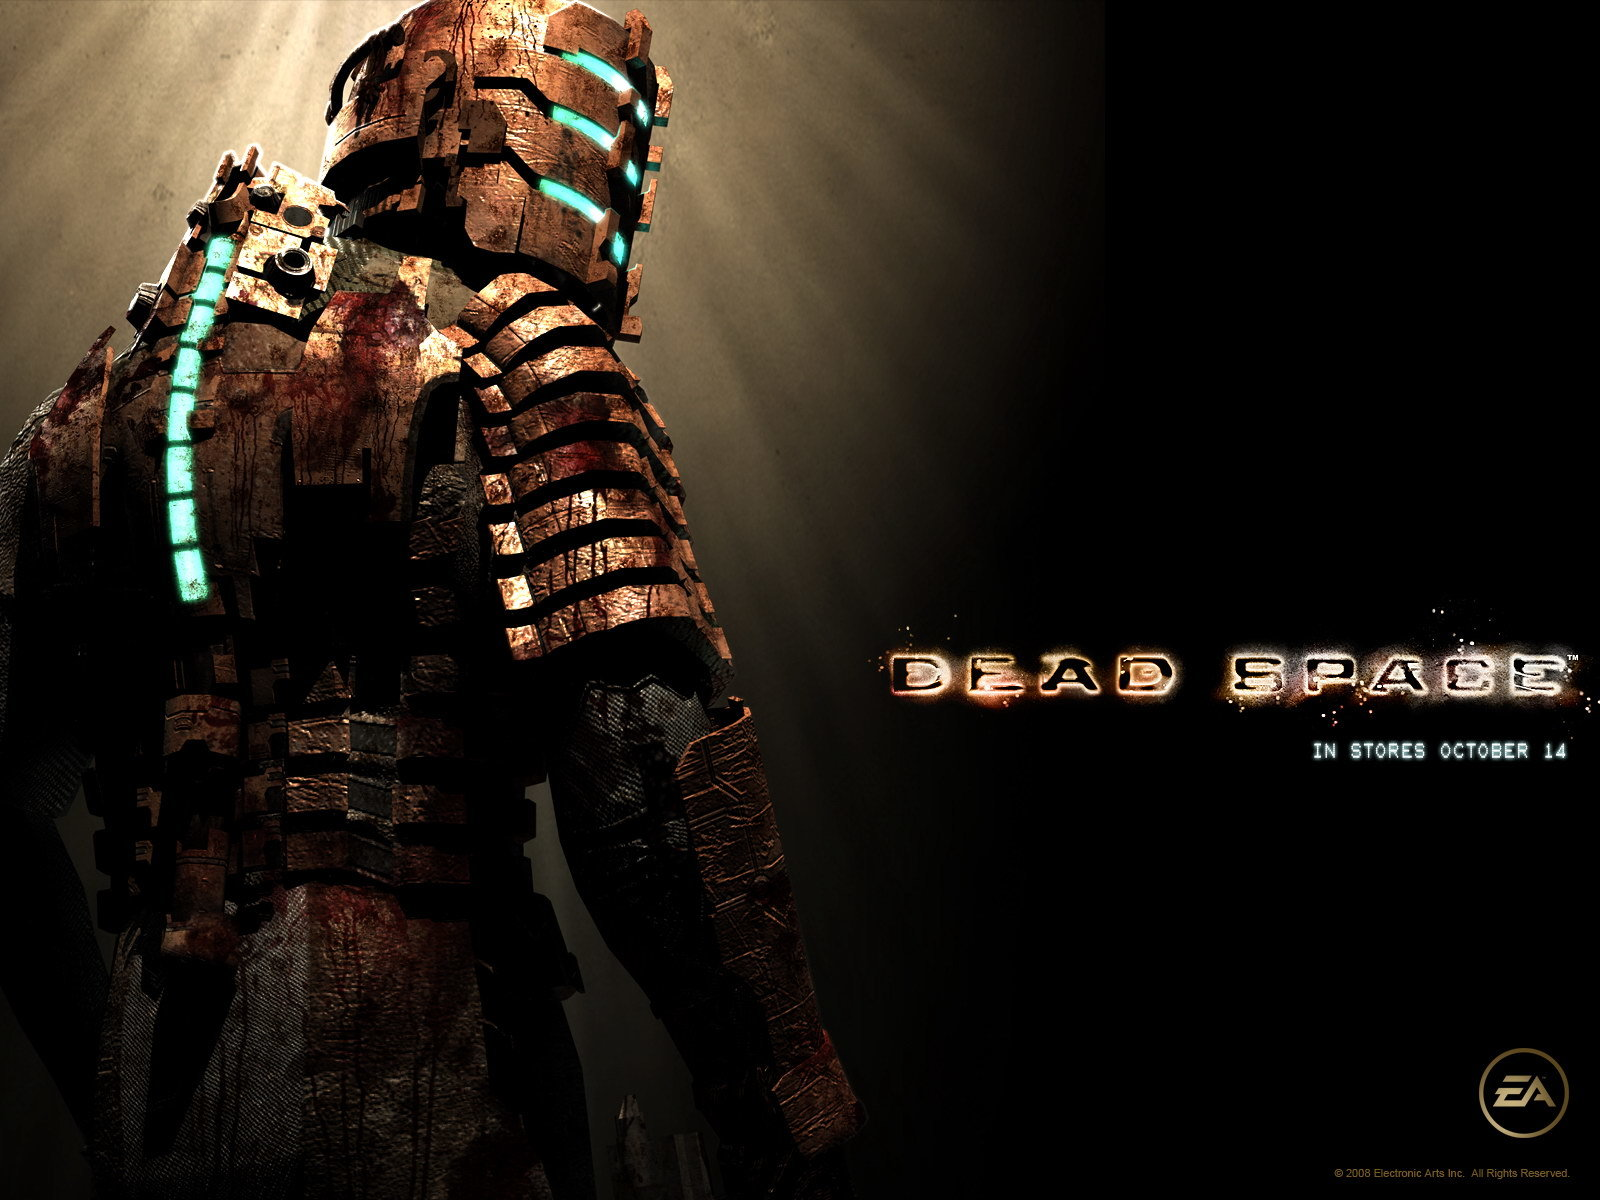 Free Dead Space high quality wallpaper ID:211582 for hd 1600x1200 desktop